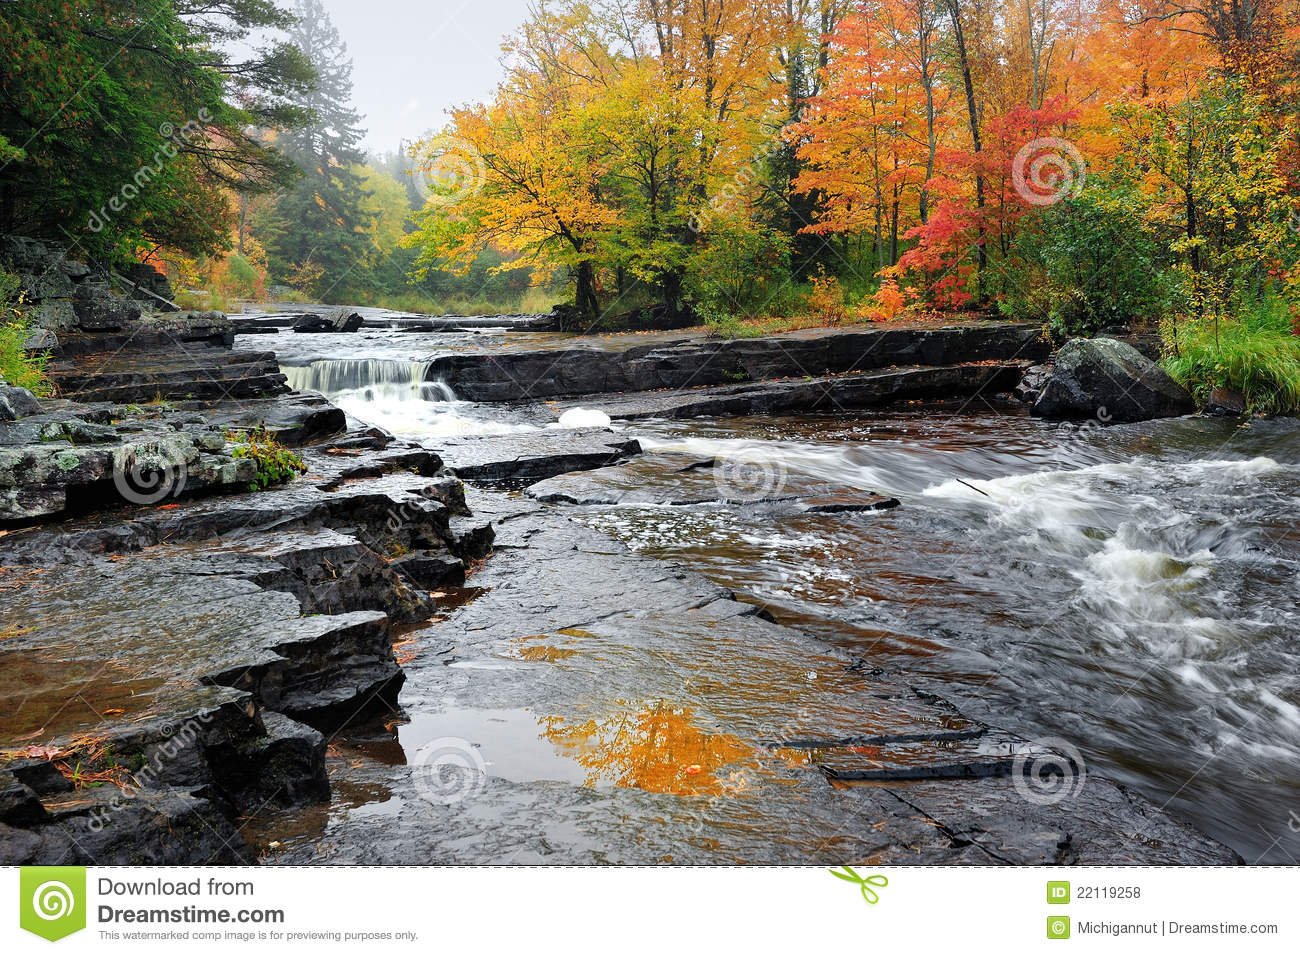 Autumn Leaves Flowing In September Rain >> Canyon Falls Michigan Autumn Waterfall Stock Photo - Image of stone, peaceful: 22119258